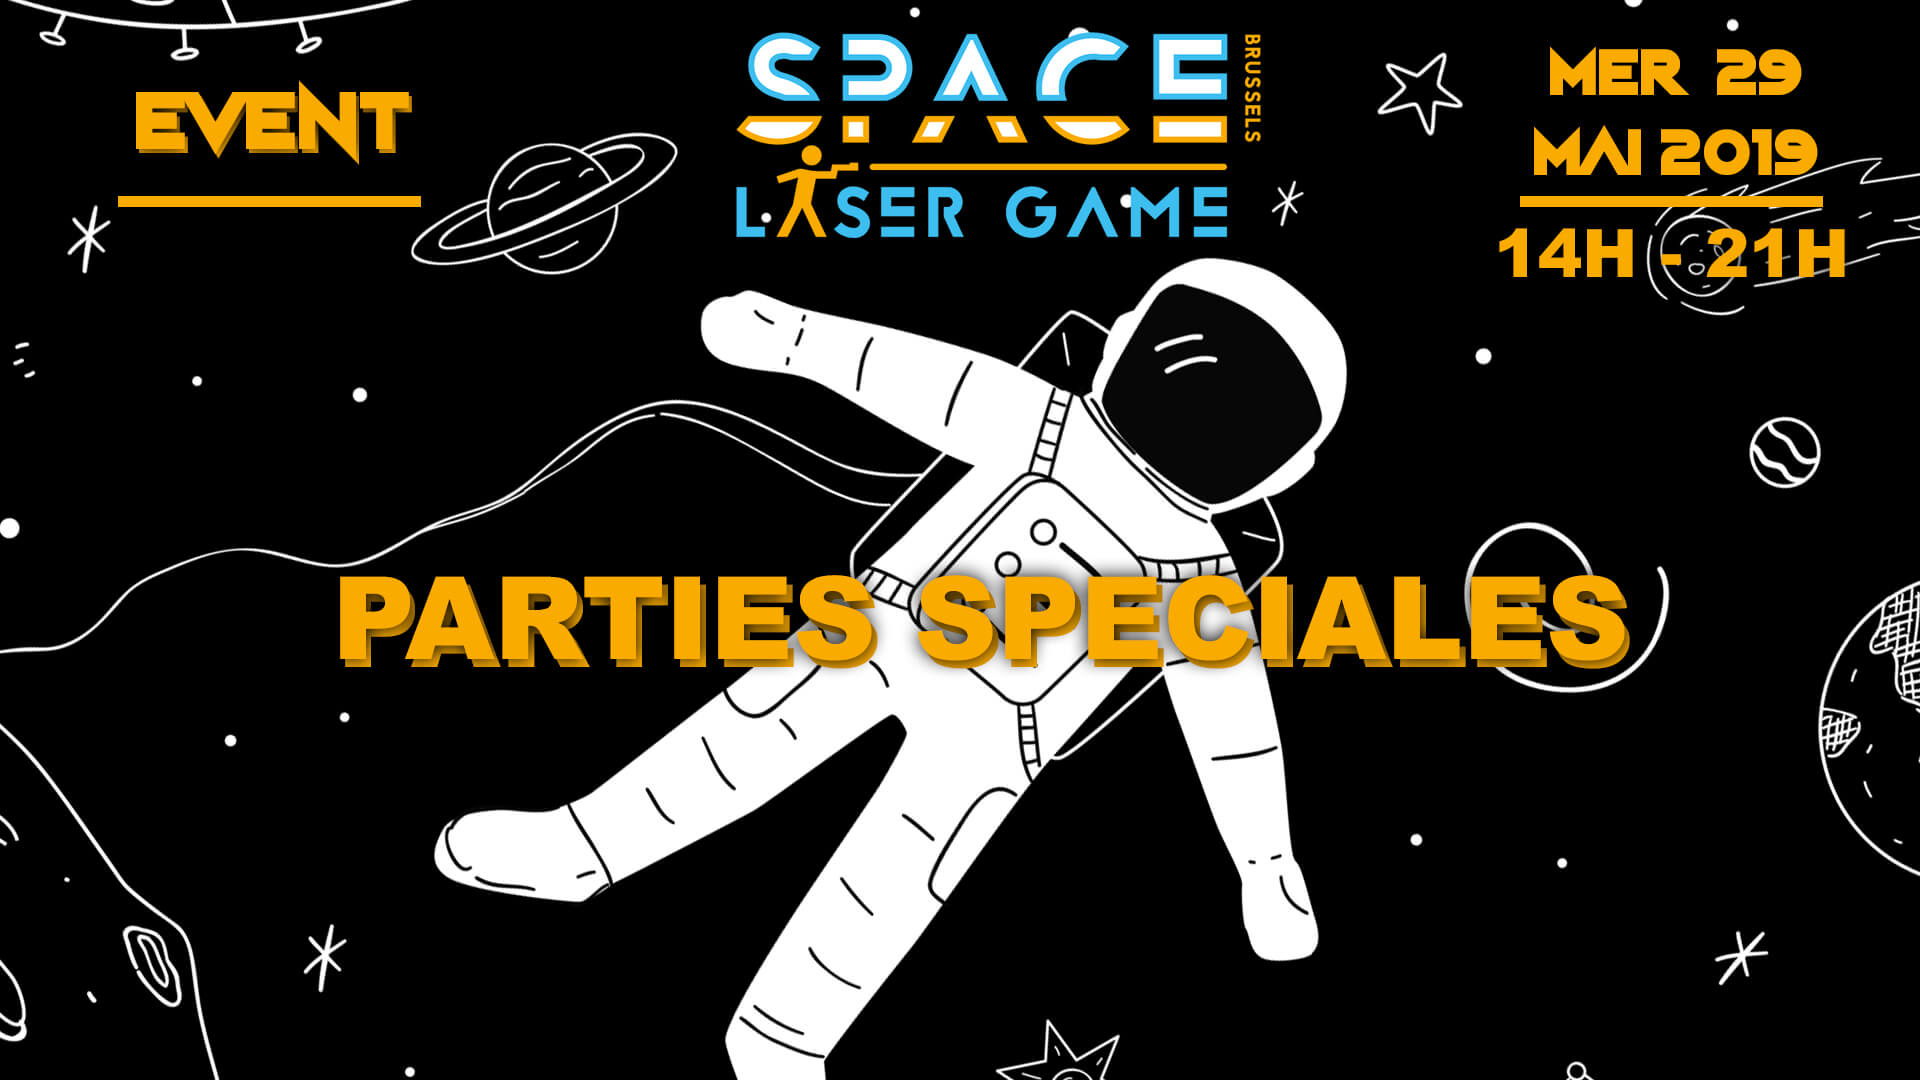 Special Parties Promotion Space Laser Game Bruxelles